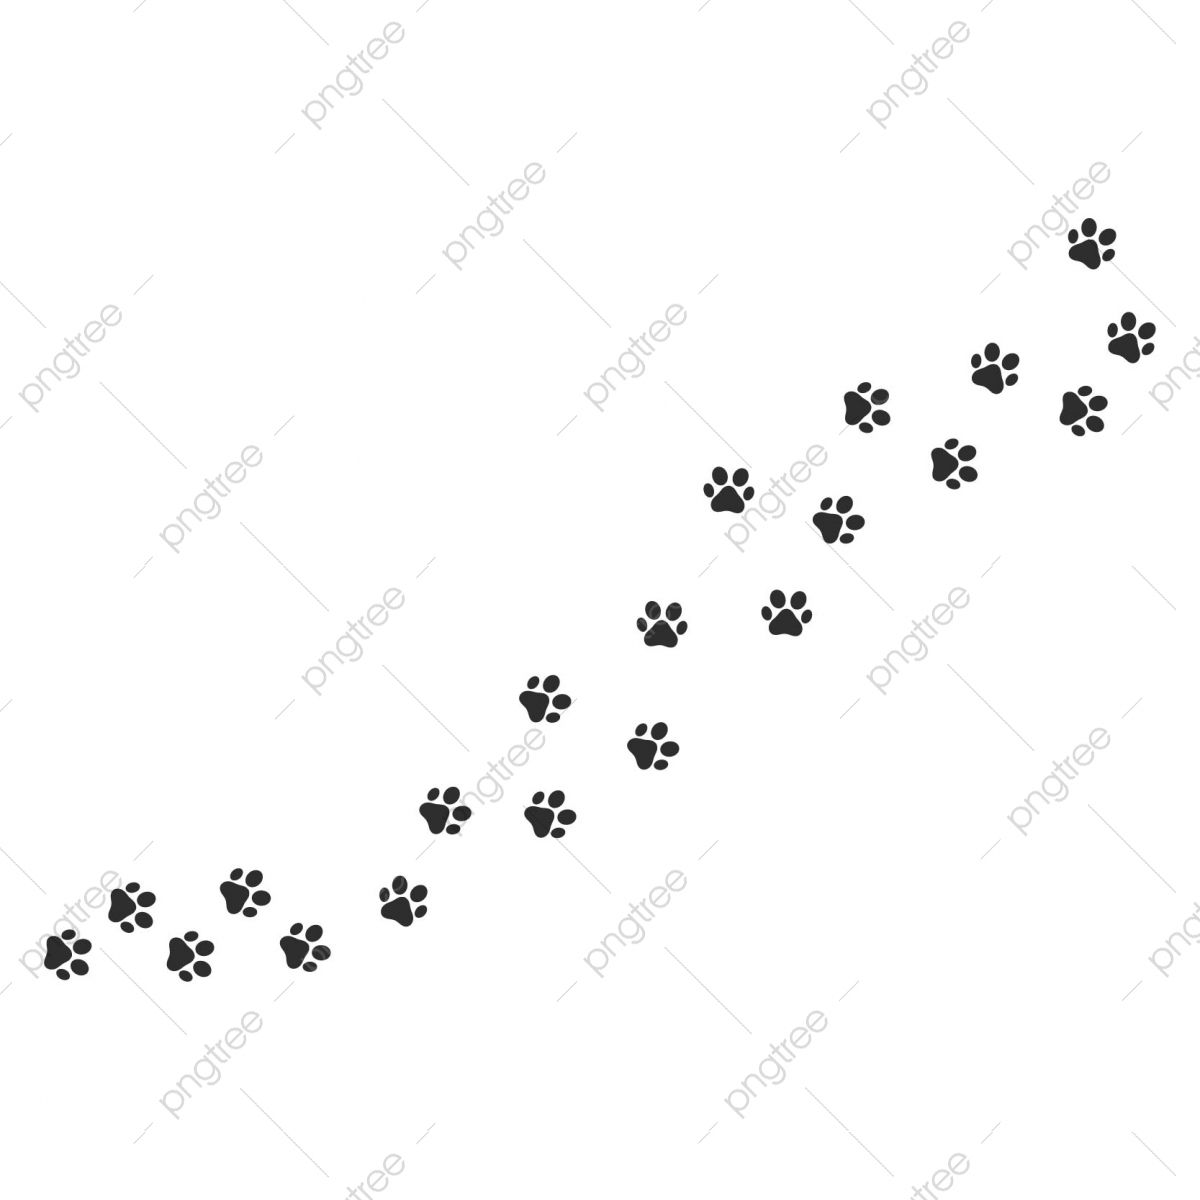 Paw Vector Foot Trail Print Of Cat Paw Dog Puppy Cat Vector Print Animal Isolated On White Background Cat Icons Dog Icons Animal Icons Png And Vector With Tr In 2020 Are you looking for paw cat design images templates psd or png vectors files? pinterest